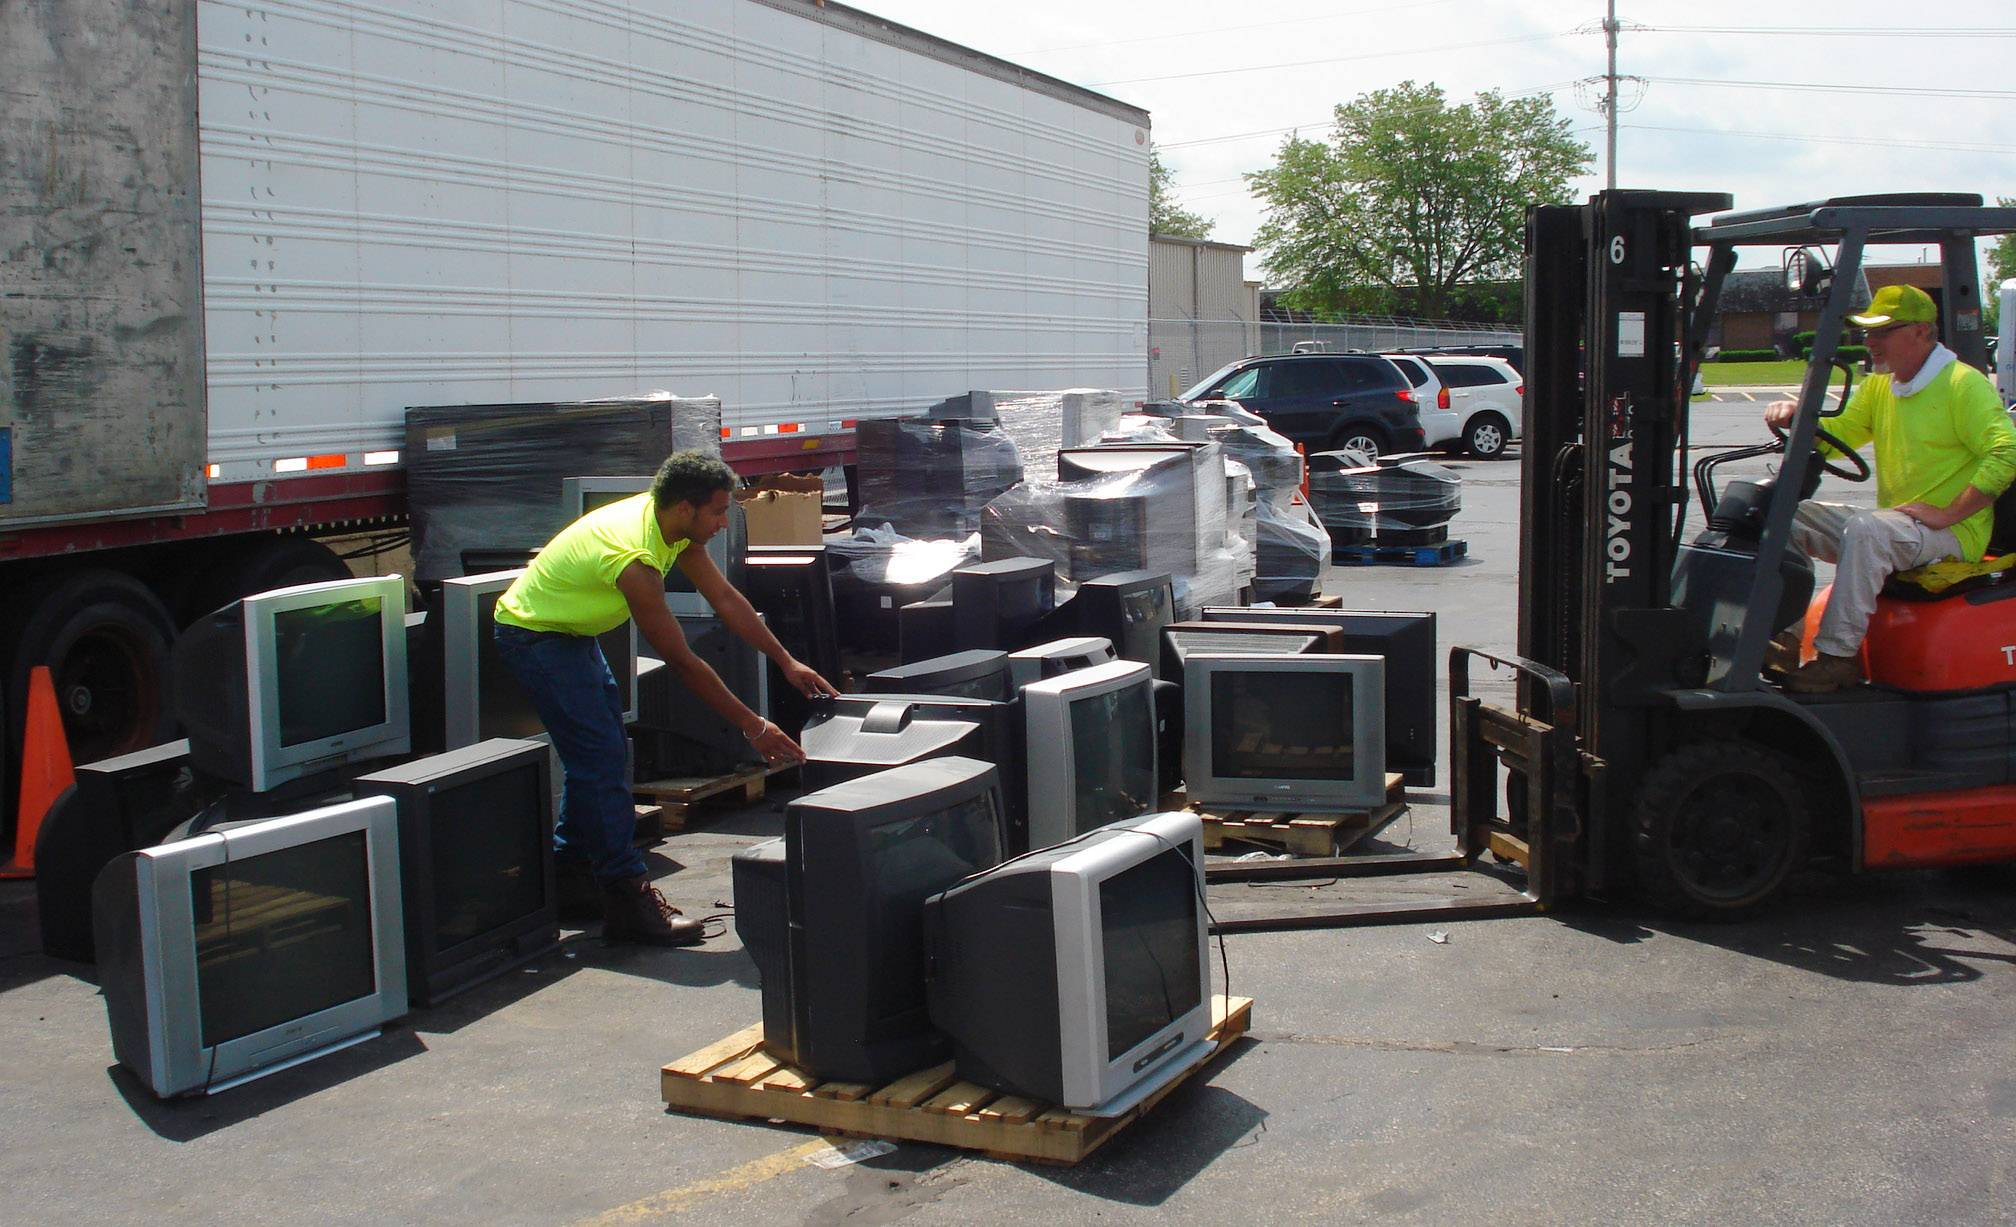 Electronics drop-off overwhelming Wauconda Township